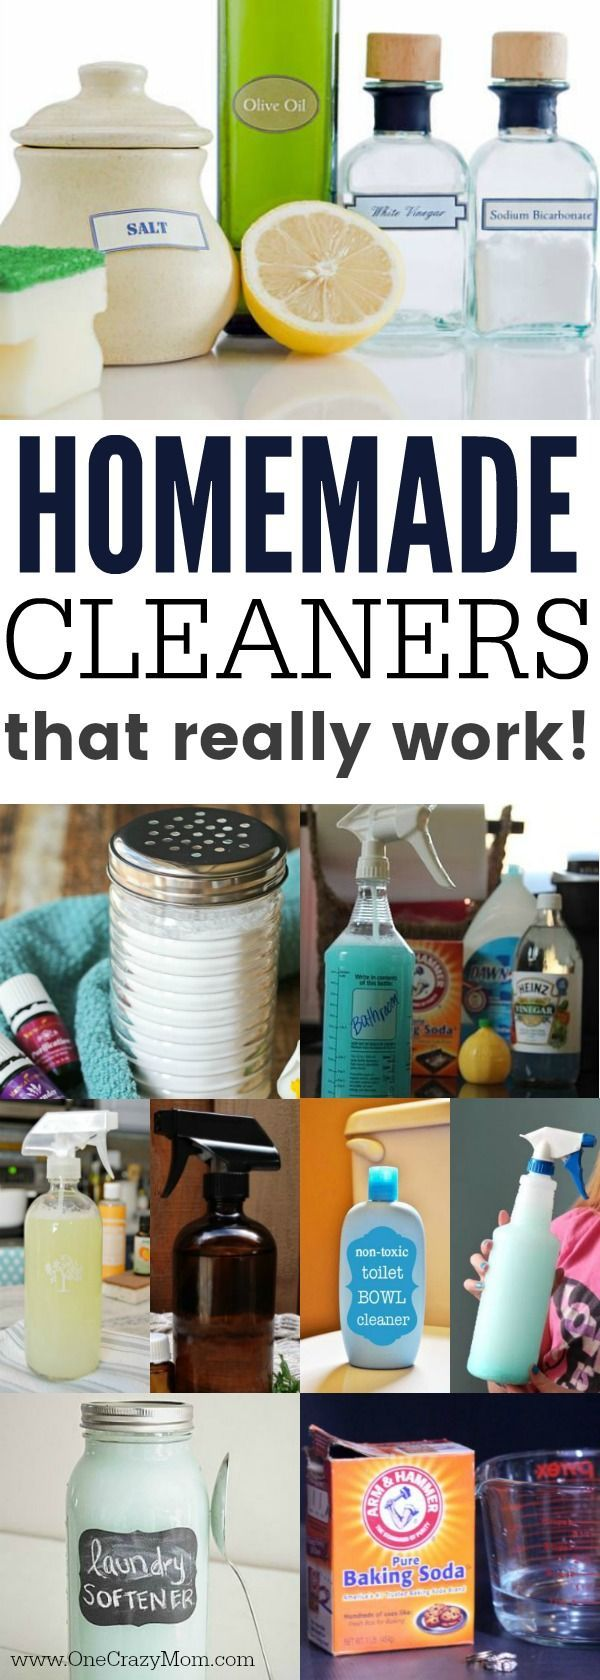 Homemade Cleaners - 20 Homemade Cleaning Products